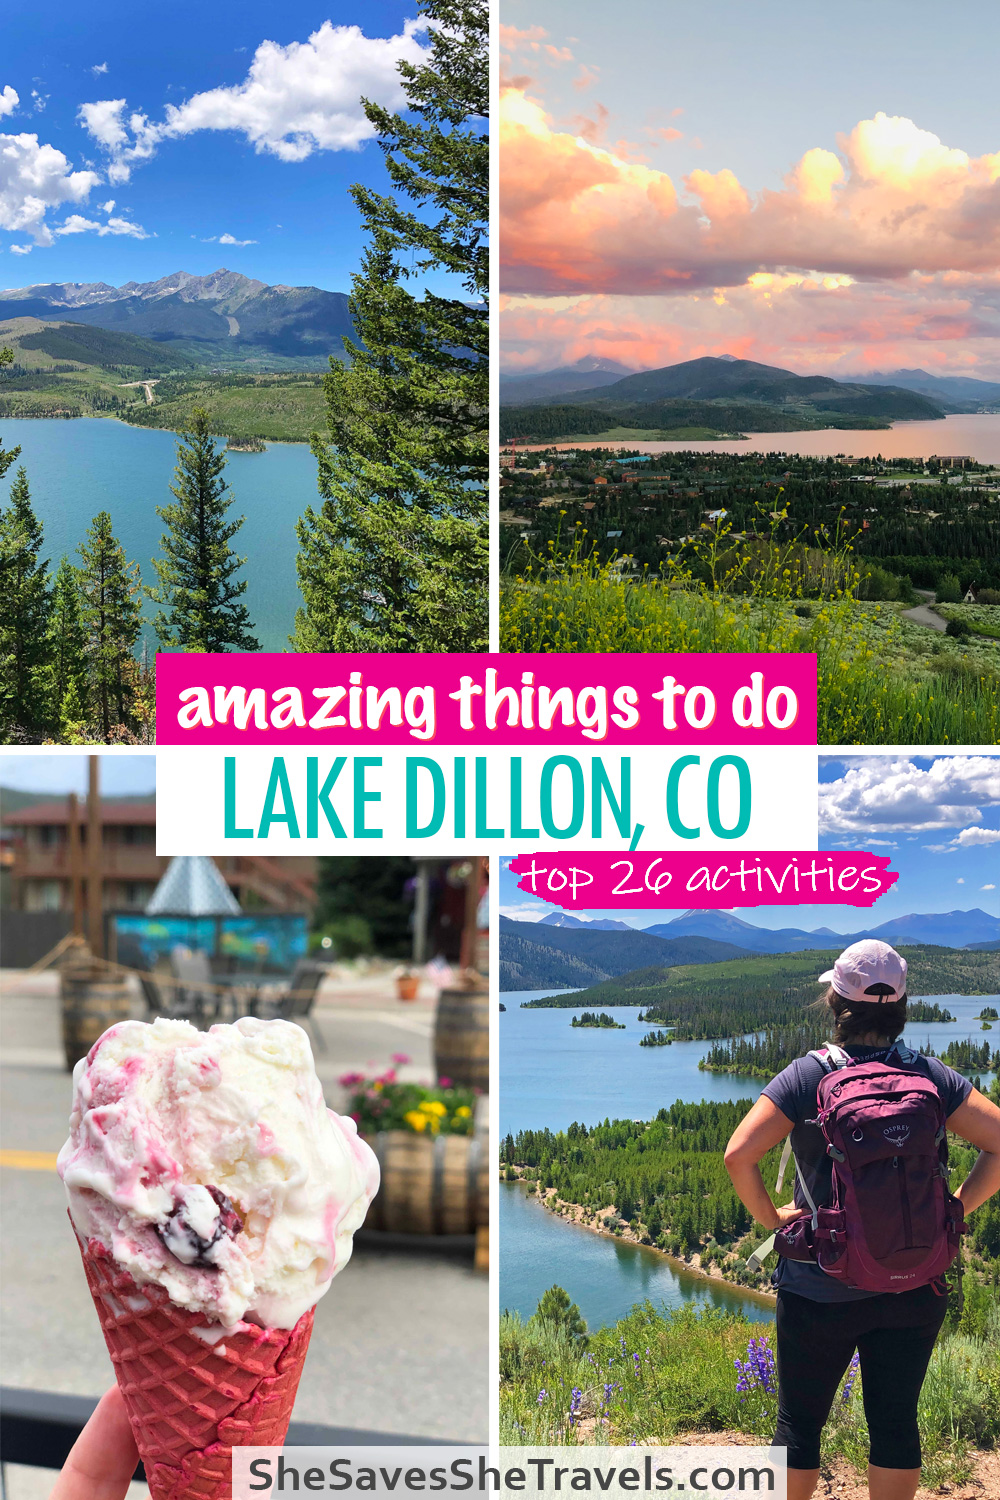 amazing things to do Lake Dillon, CO